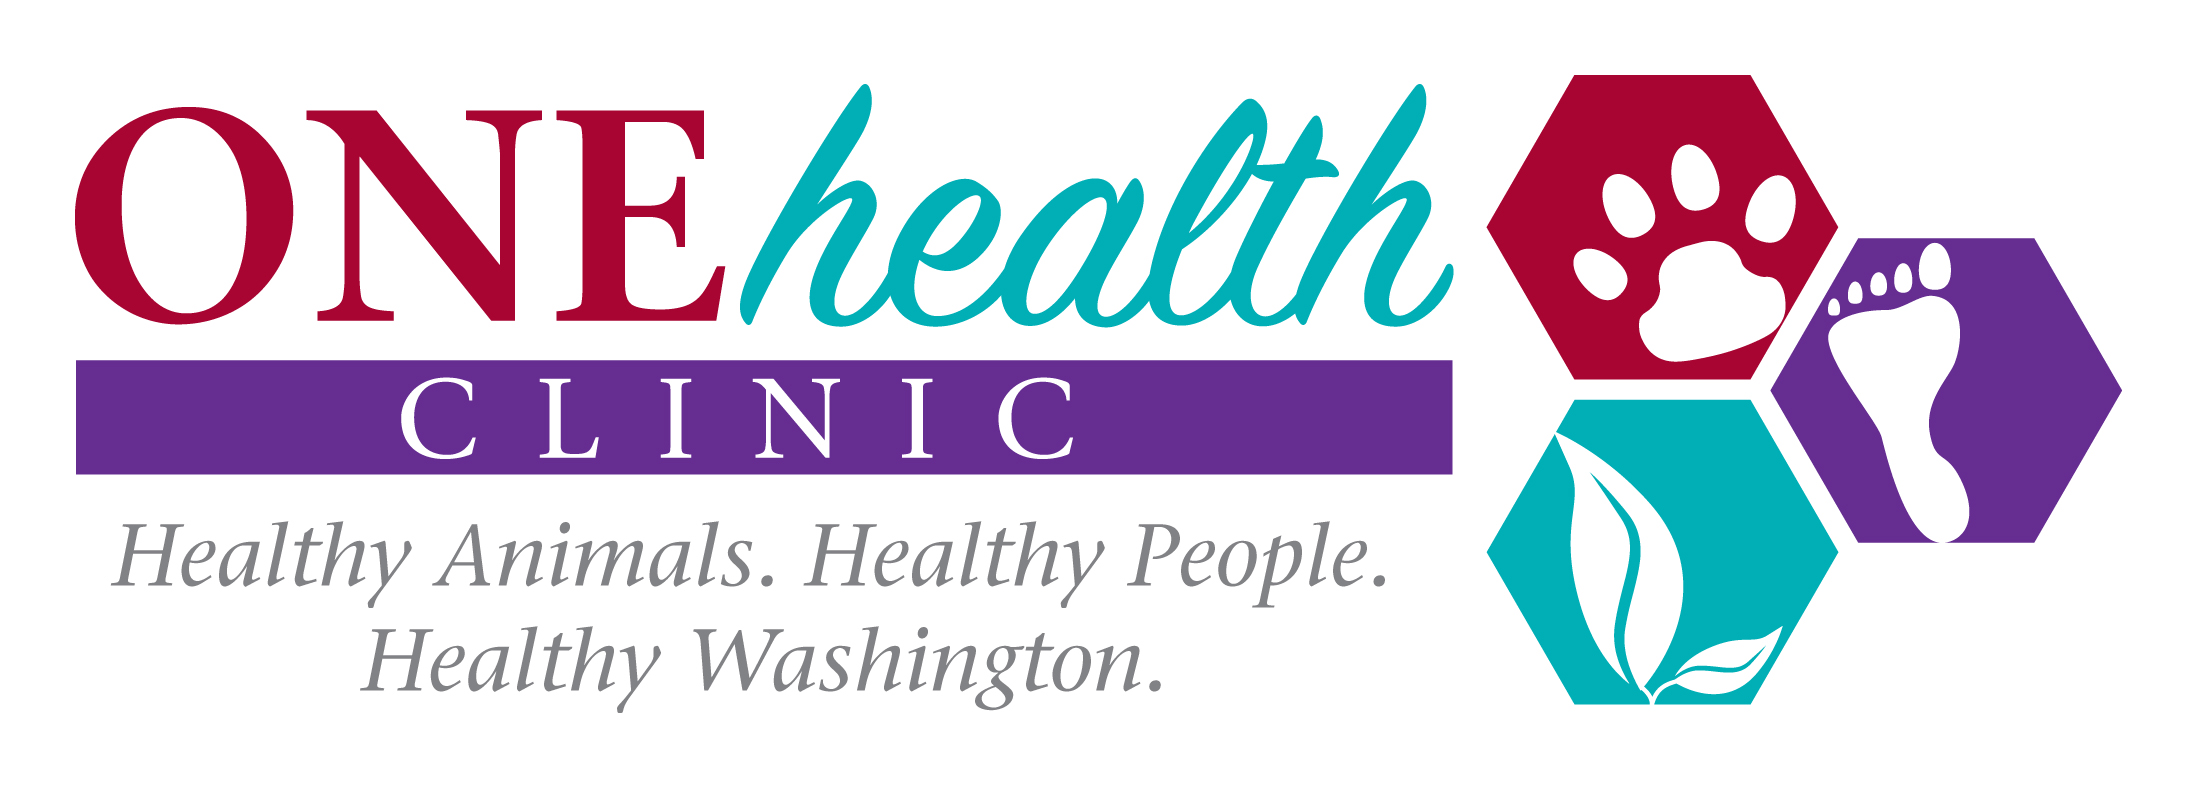 One Health Clinic Logo